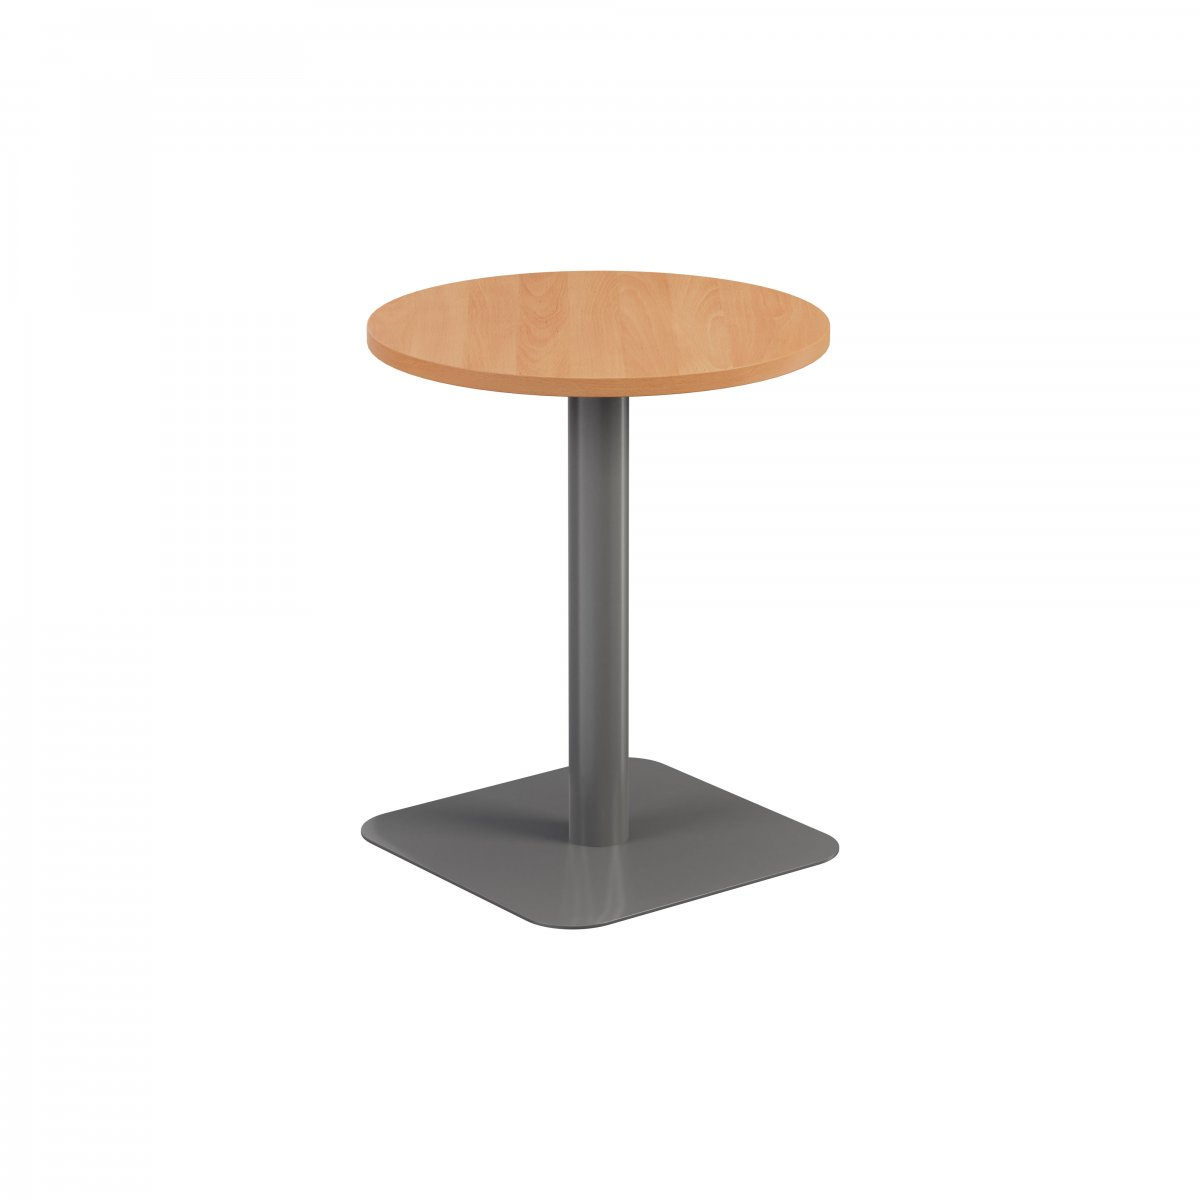 Contract Table Mid 600mm Beech - Version 2